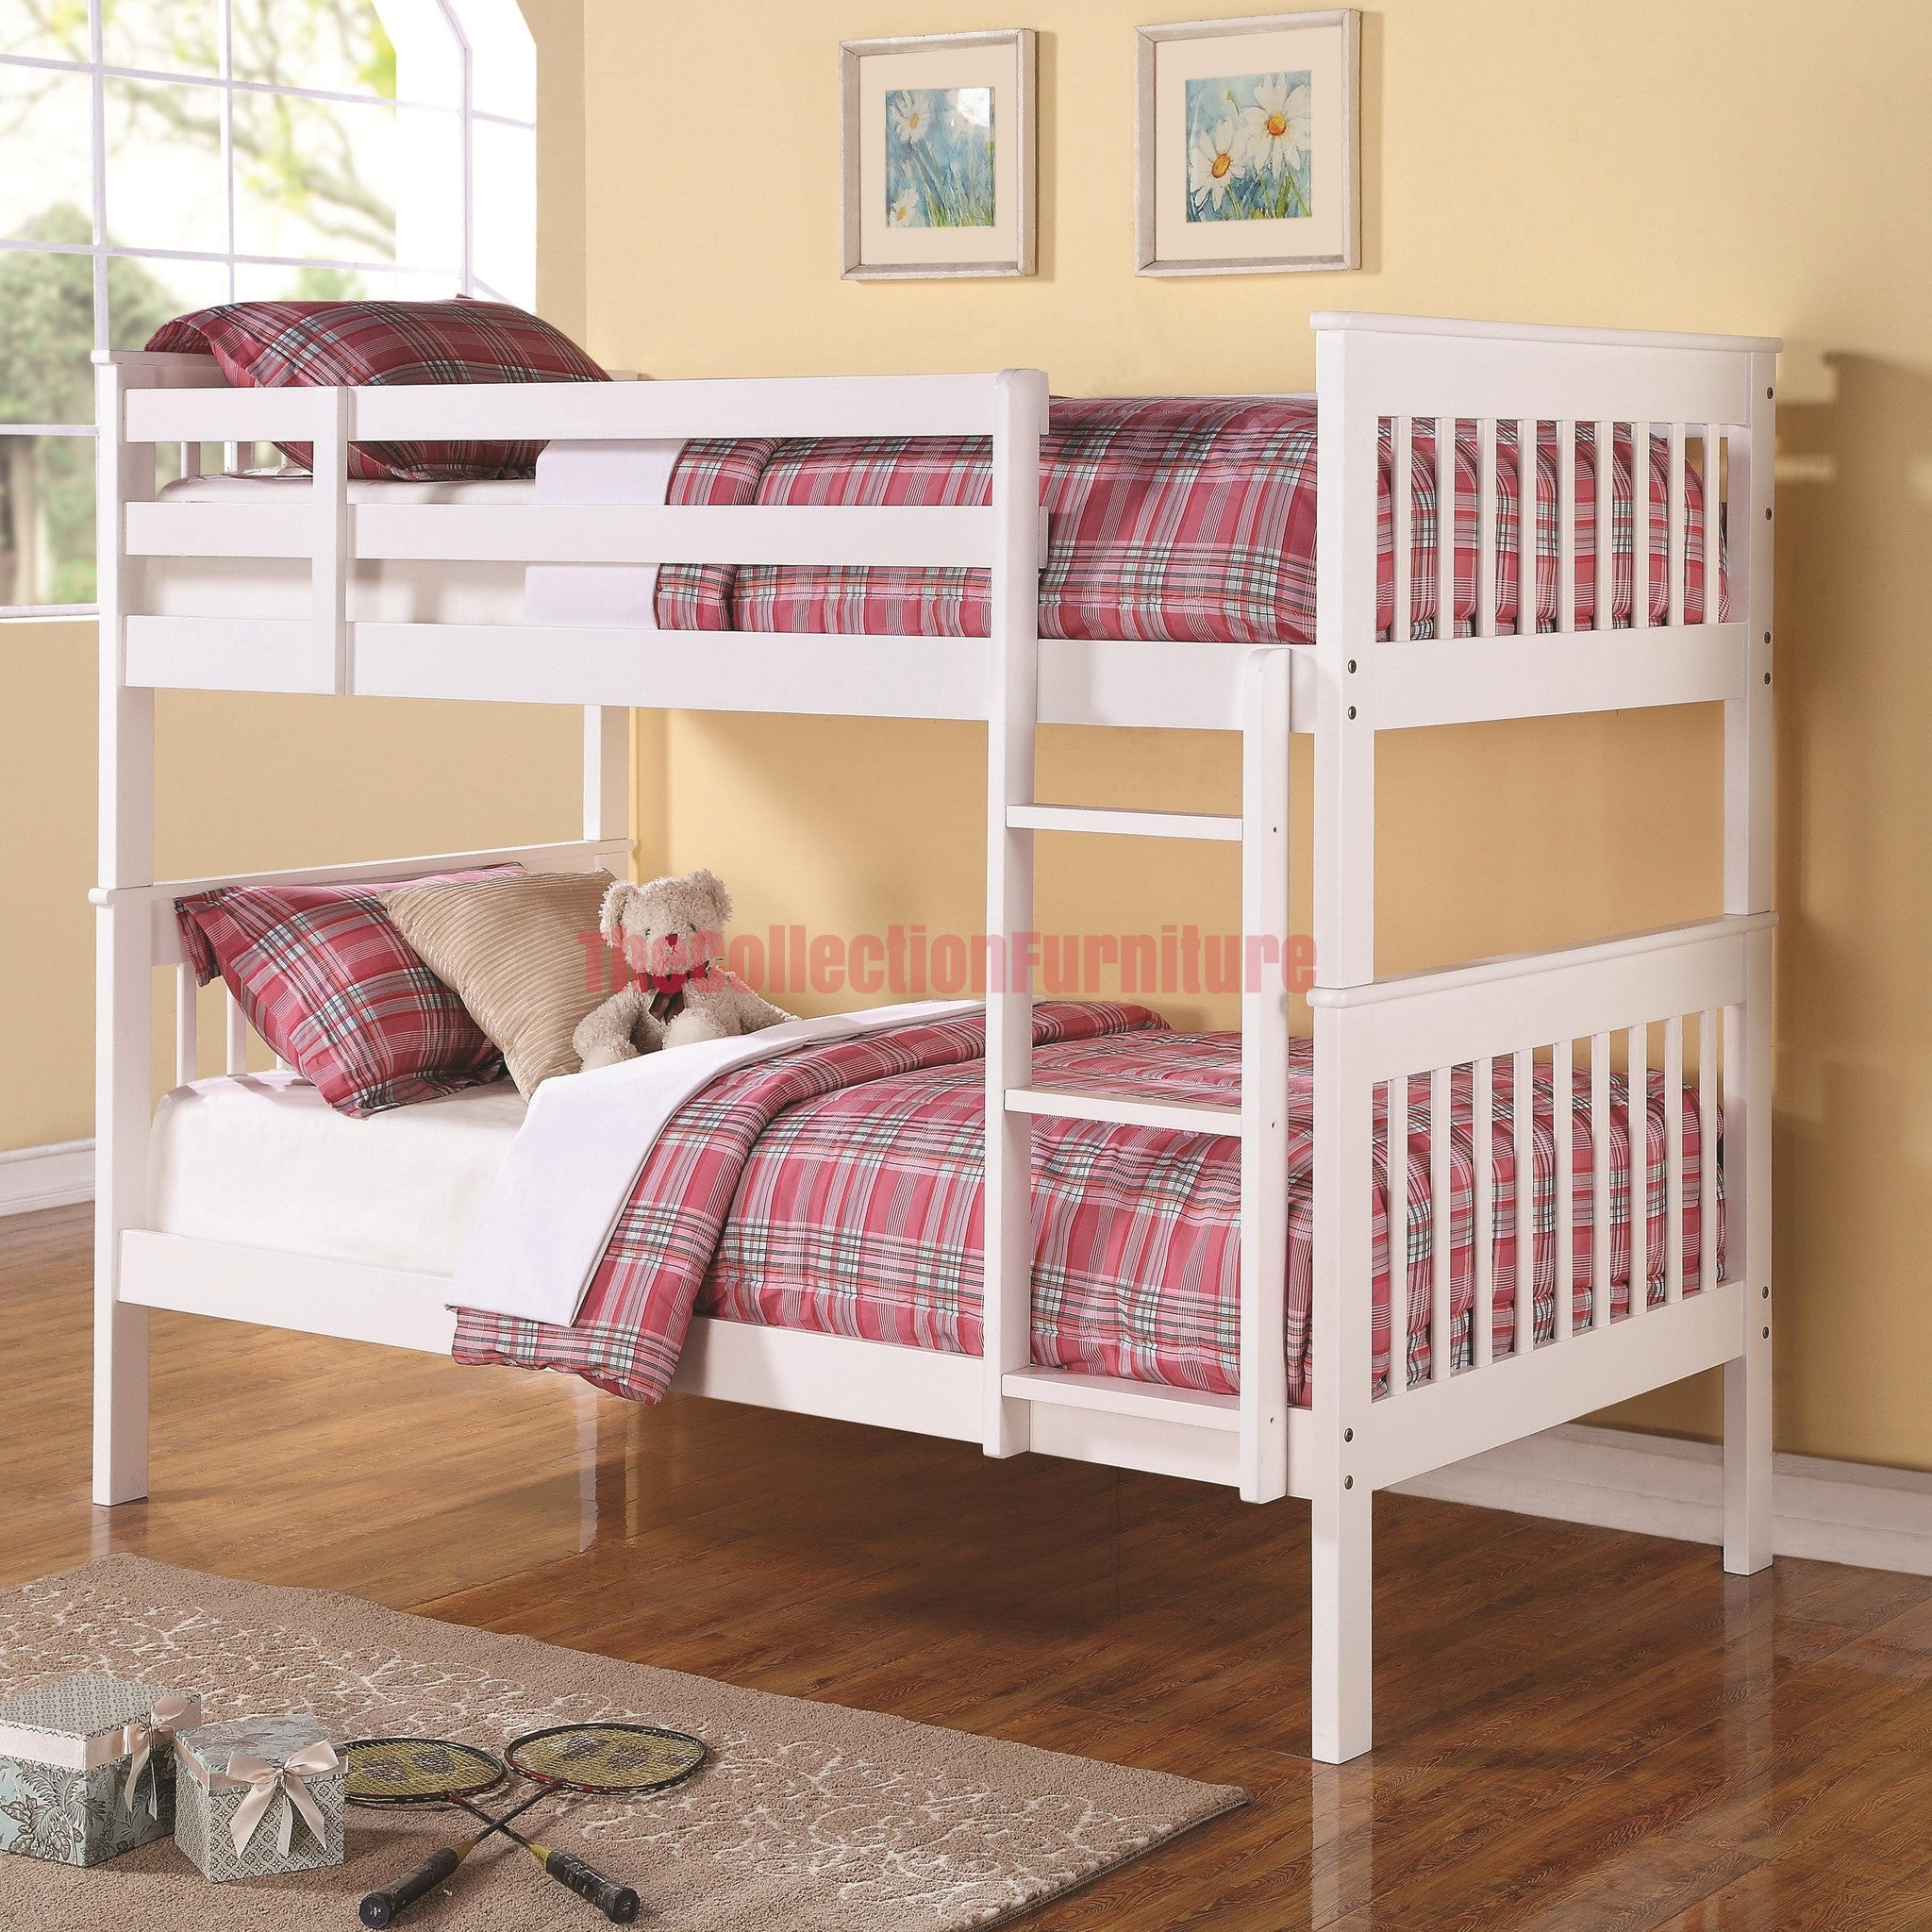 Daisy White Bunk Bed – The Collection Furniture